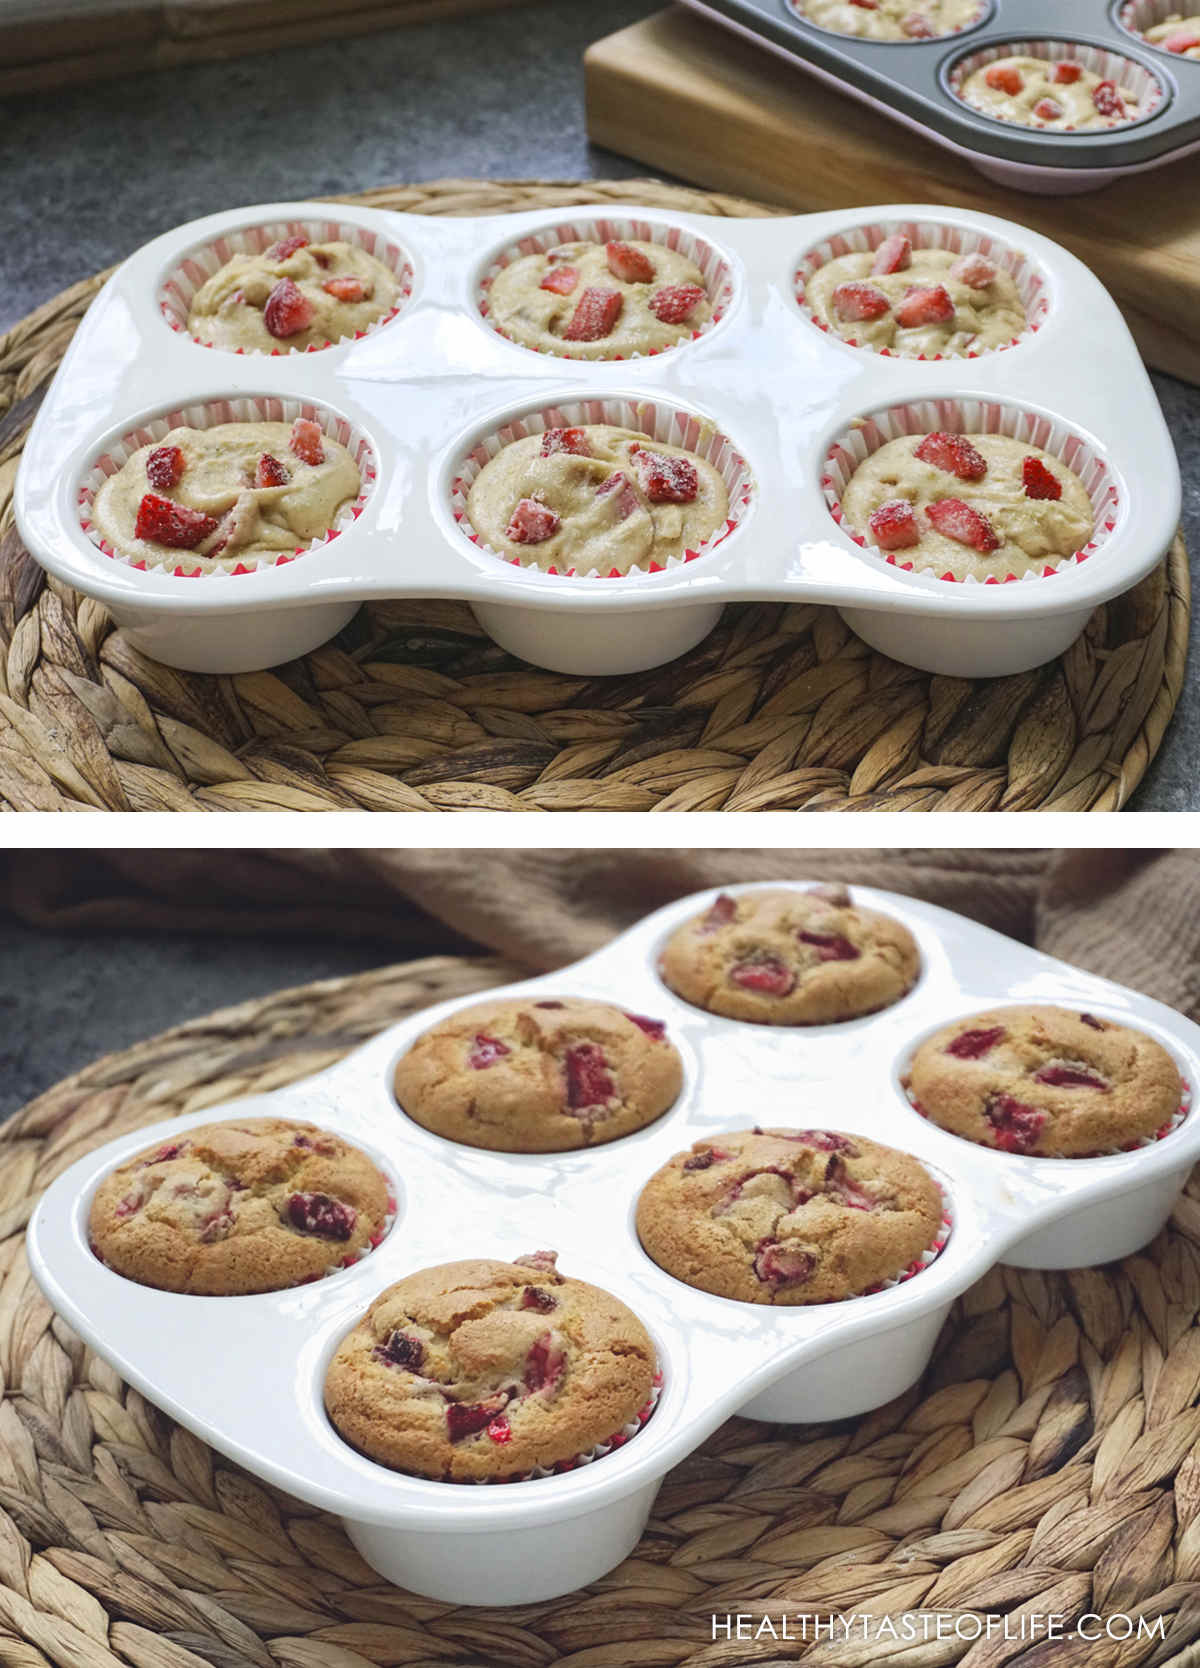 Gluten free strawberry muffin dough in a muffin tin and the baked version below.